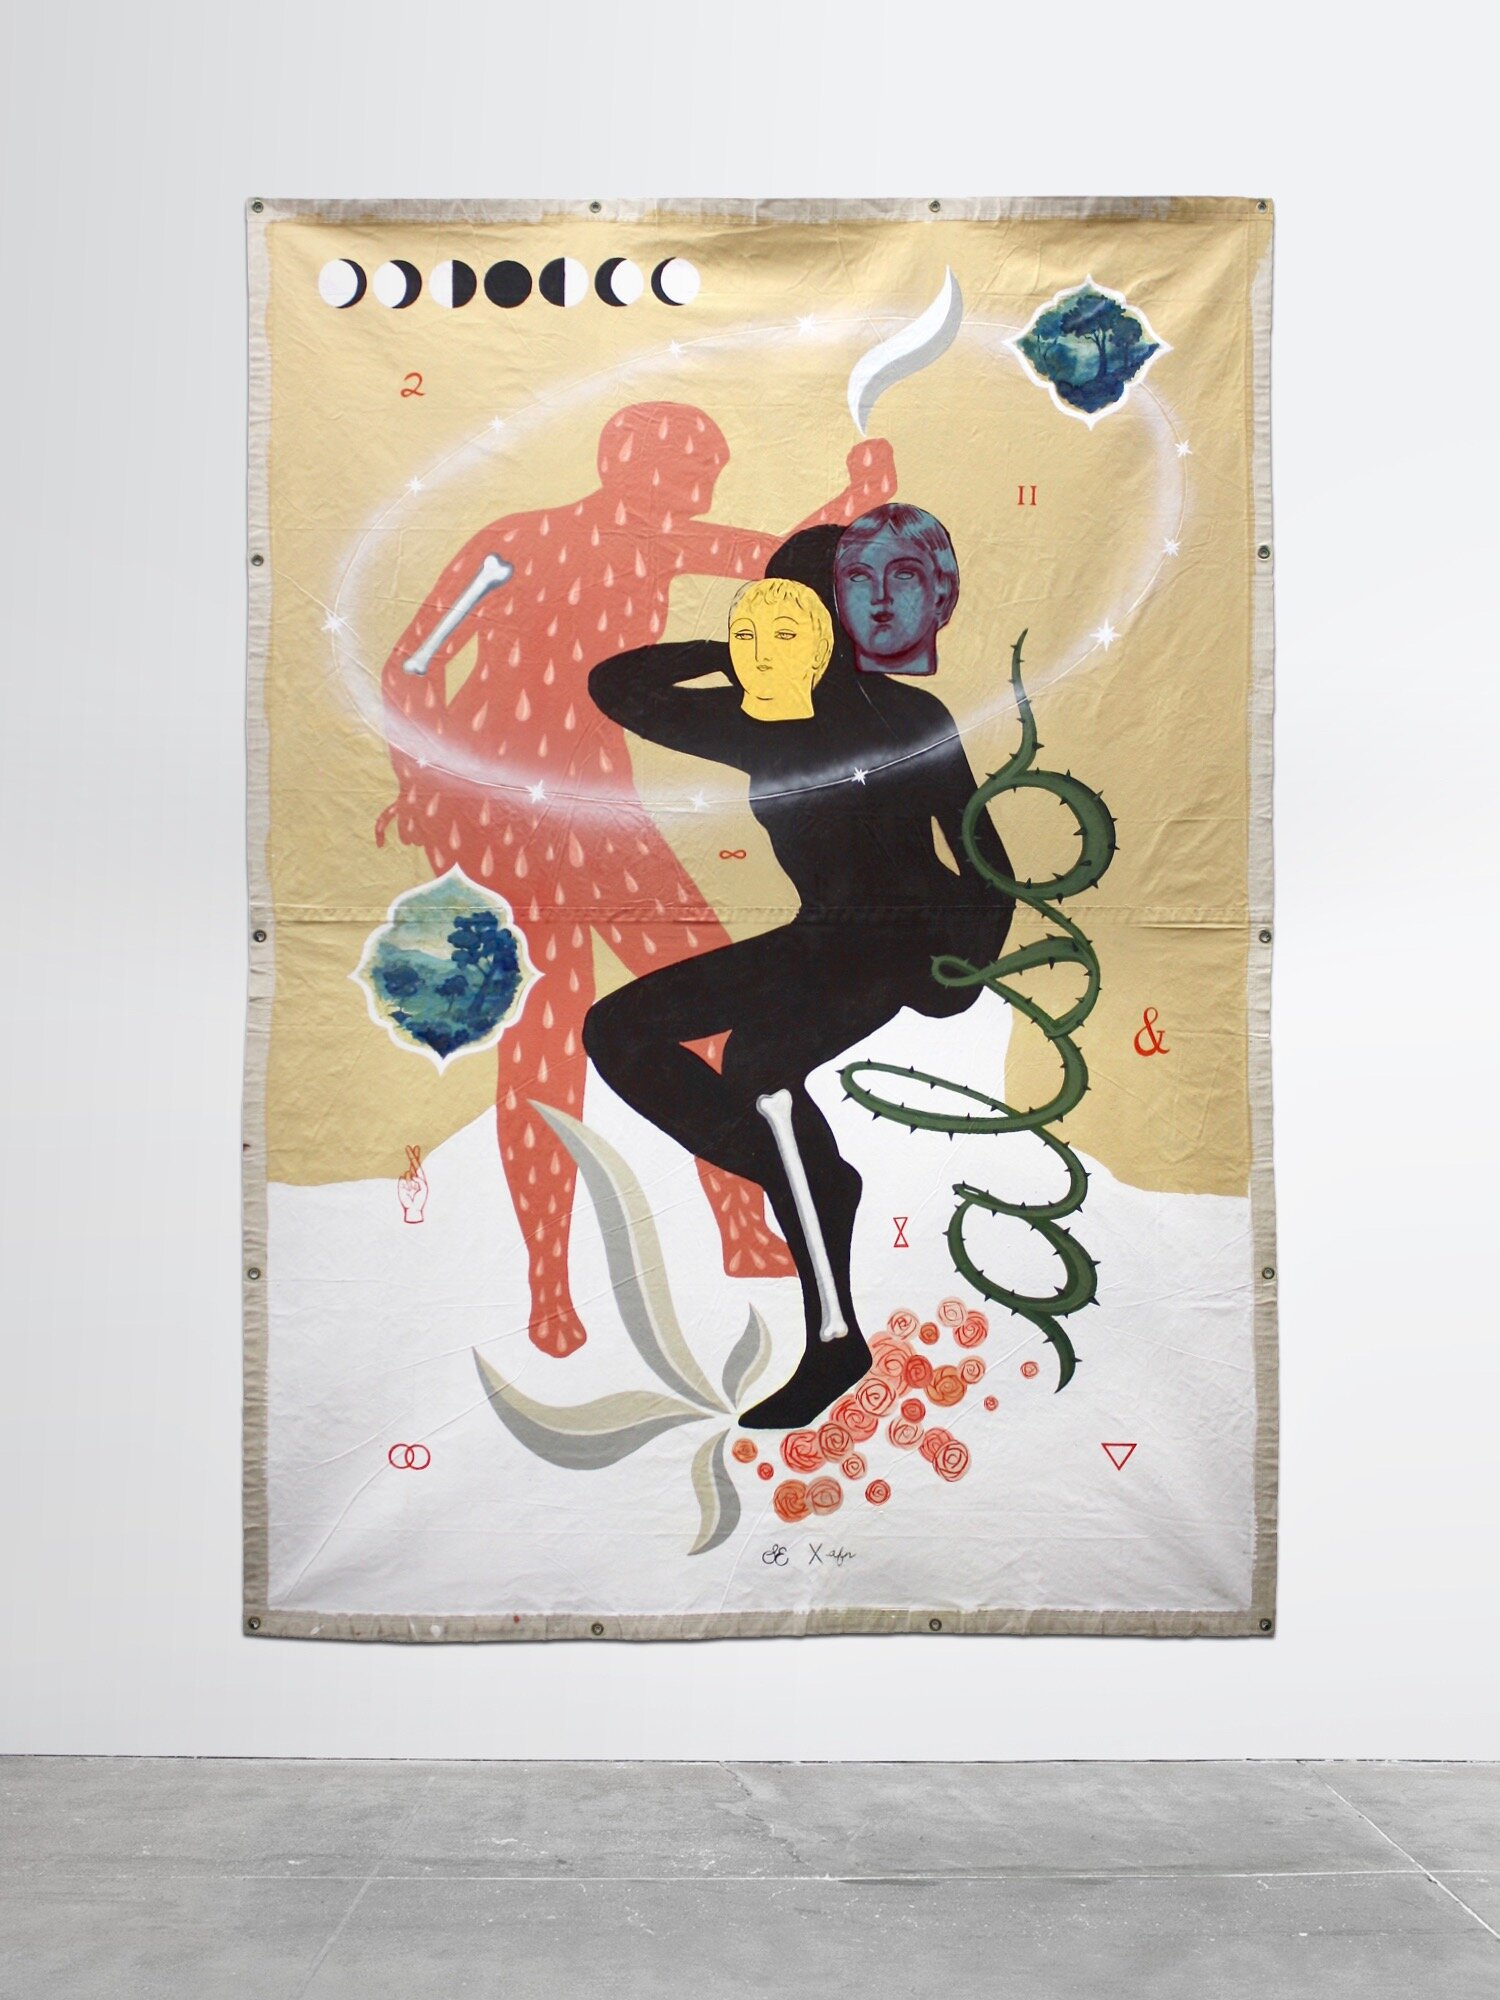 """Also, A Collaborative Painting   by Sofia Enriquez & Anne Faith Nicholls, 2018 Acrylic and enamel on canvas with brass grommets Approx. 8'4"""" x 6"""" Signed by both artists    ALSO   is a collaborative painting about relationships and unity. The impressively large grommeted canvas tarpaulin features layers of signature motifs by two California artists  Sofia Enriques and Anne Faith Nicholls,  who endeavored to come together to create a piece in the name of female camaraderie. The painting's narrative is revealed through symbols placed throughout it's composition, representing collaboration, inclusivity, and universal connection. This rare, large scale collaboration represents the best of both artists and presents a one-of-a-kind combination of their unique styles."""